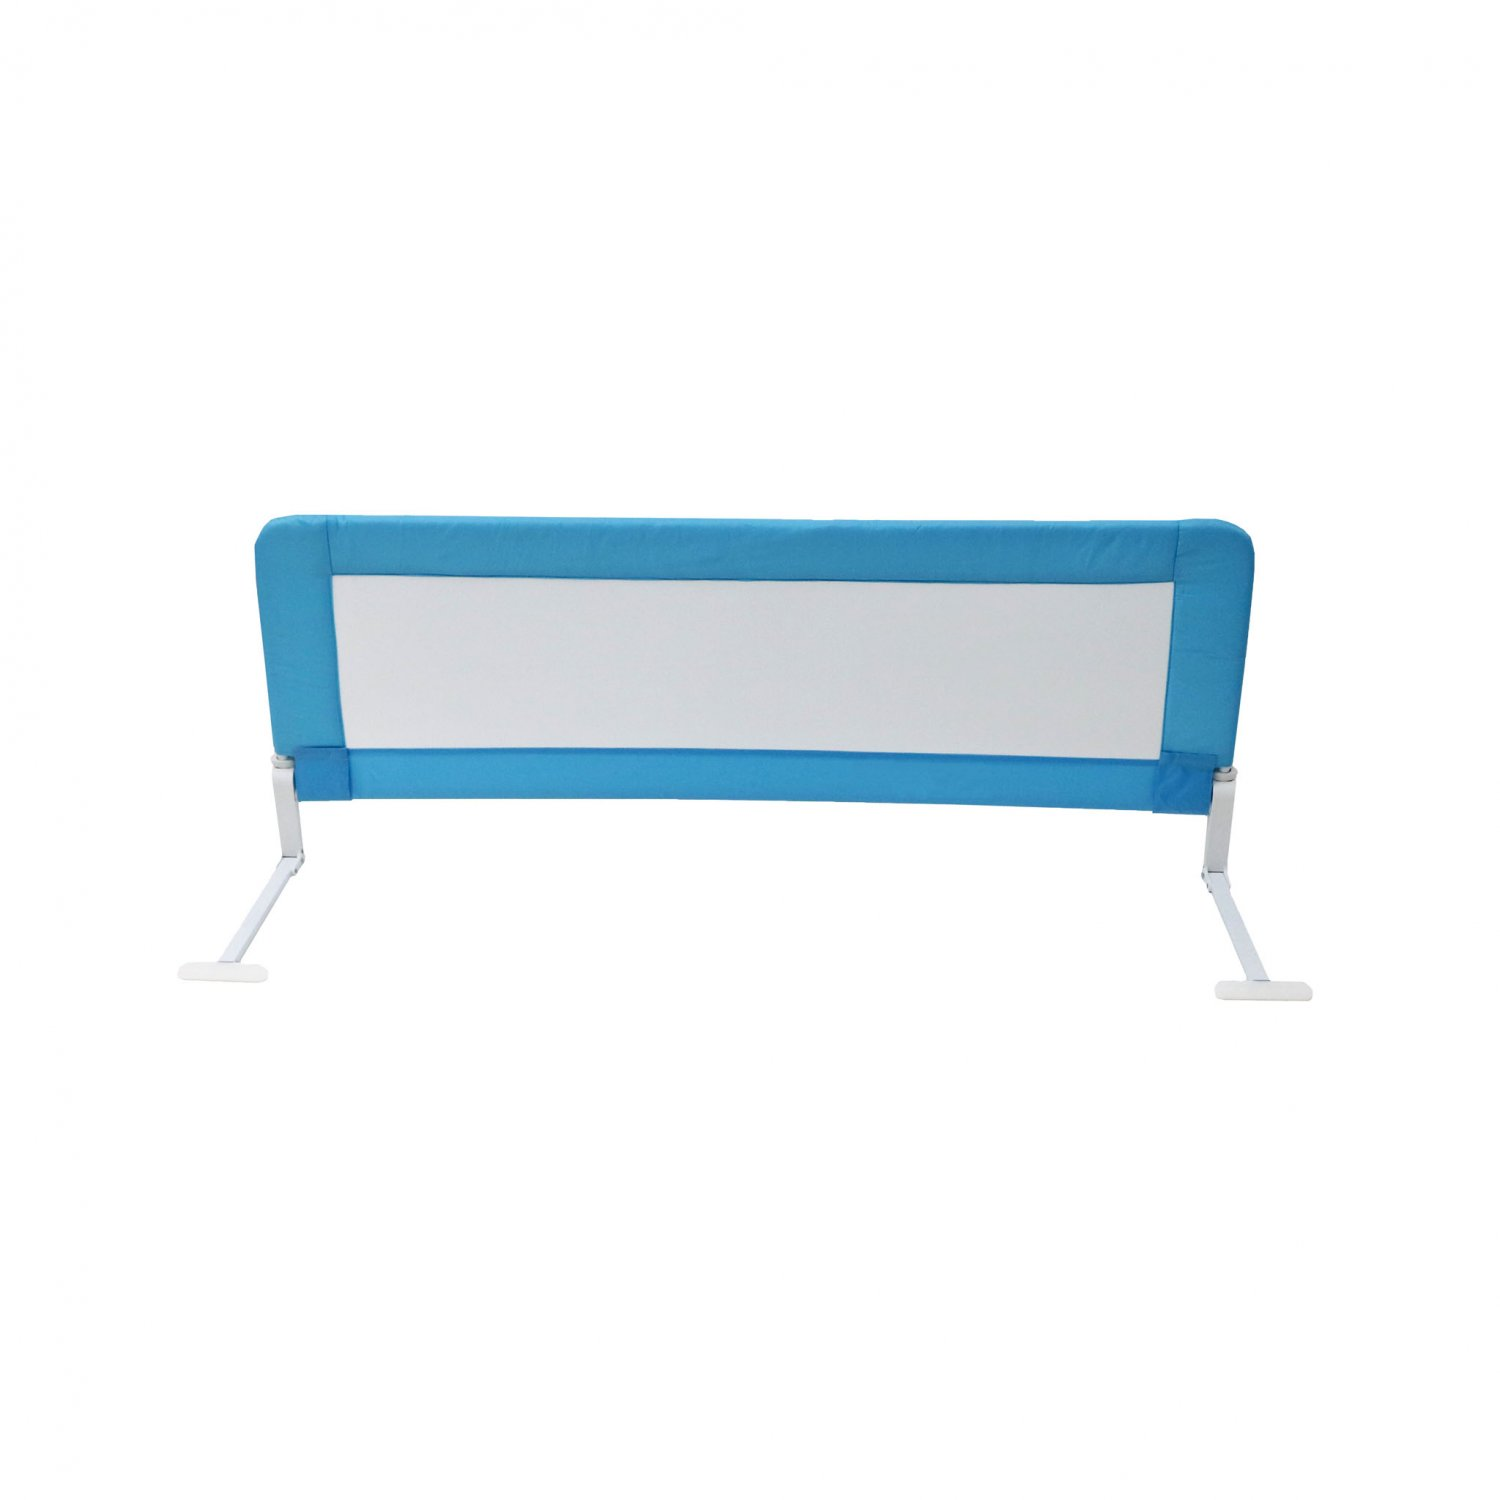 Toddler Bed Guard Rail Safety Back To Guard Side Rail For